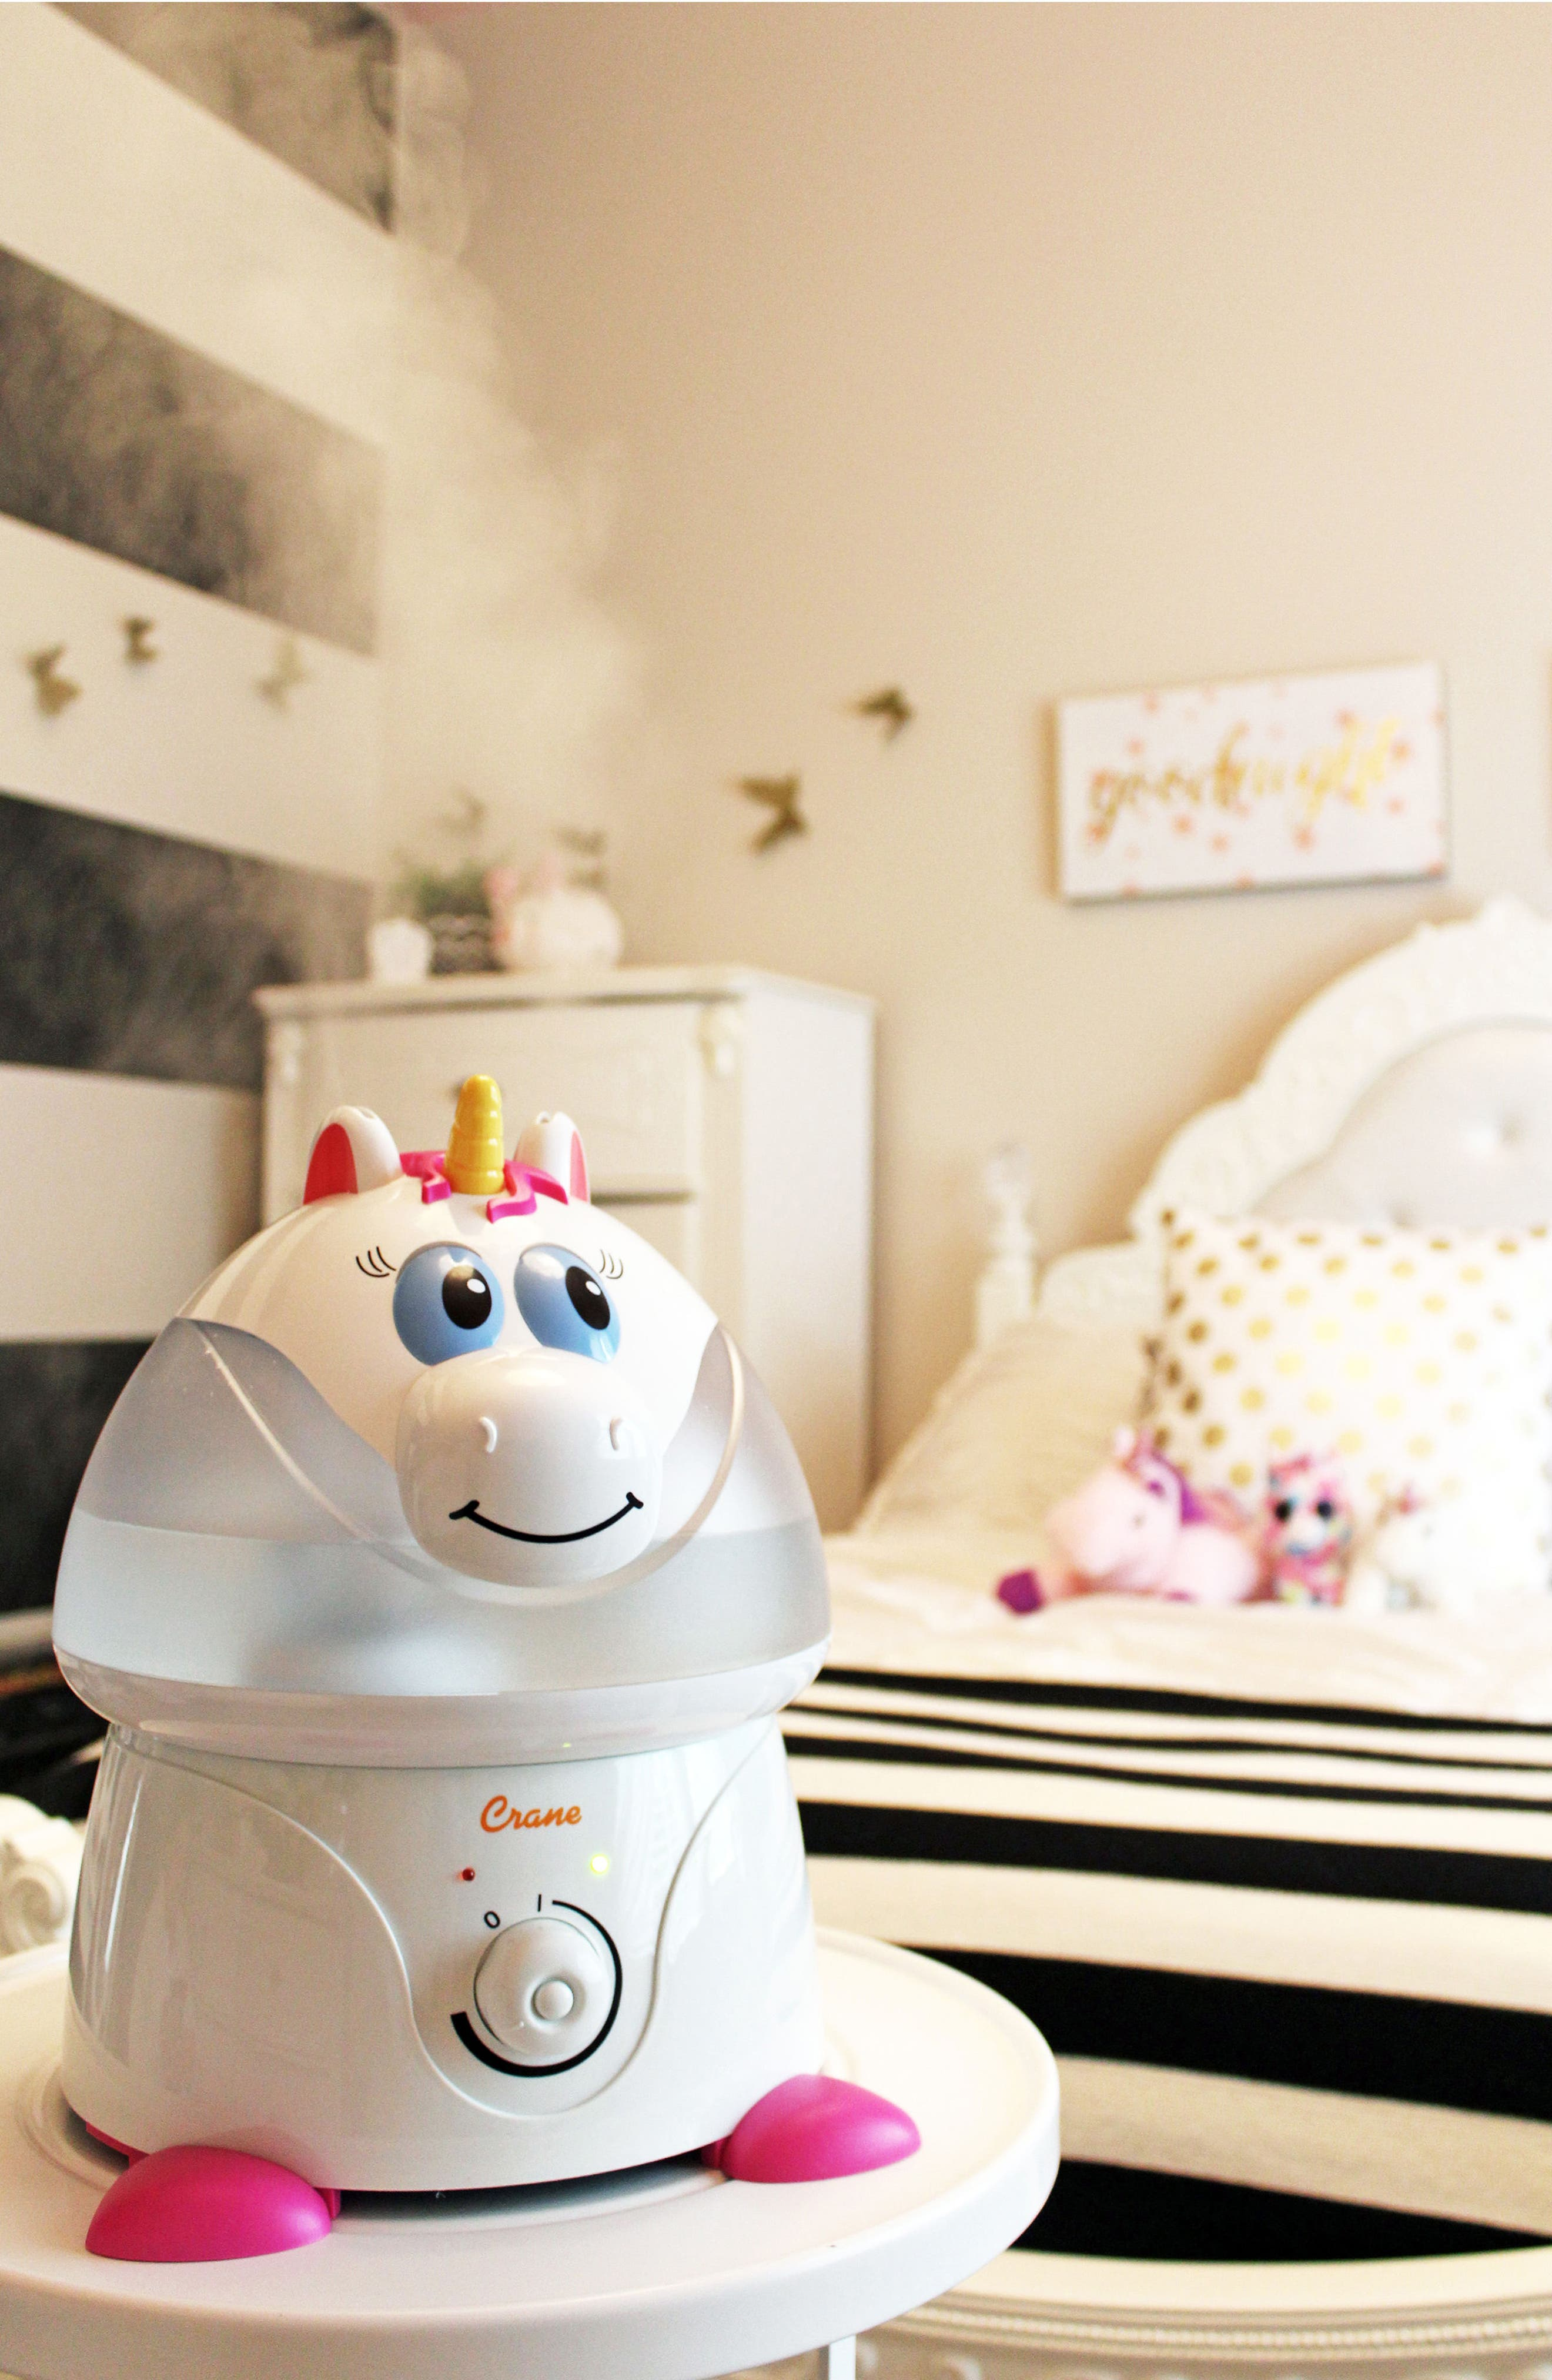 Unicorn Ultrasonic Cool-Mist Humidifier,                             Alternate thumbnail 3, color,                             White